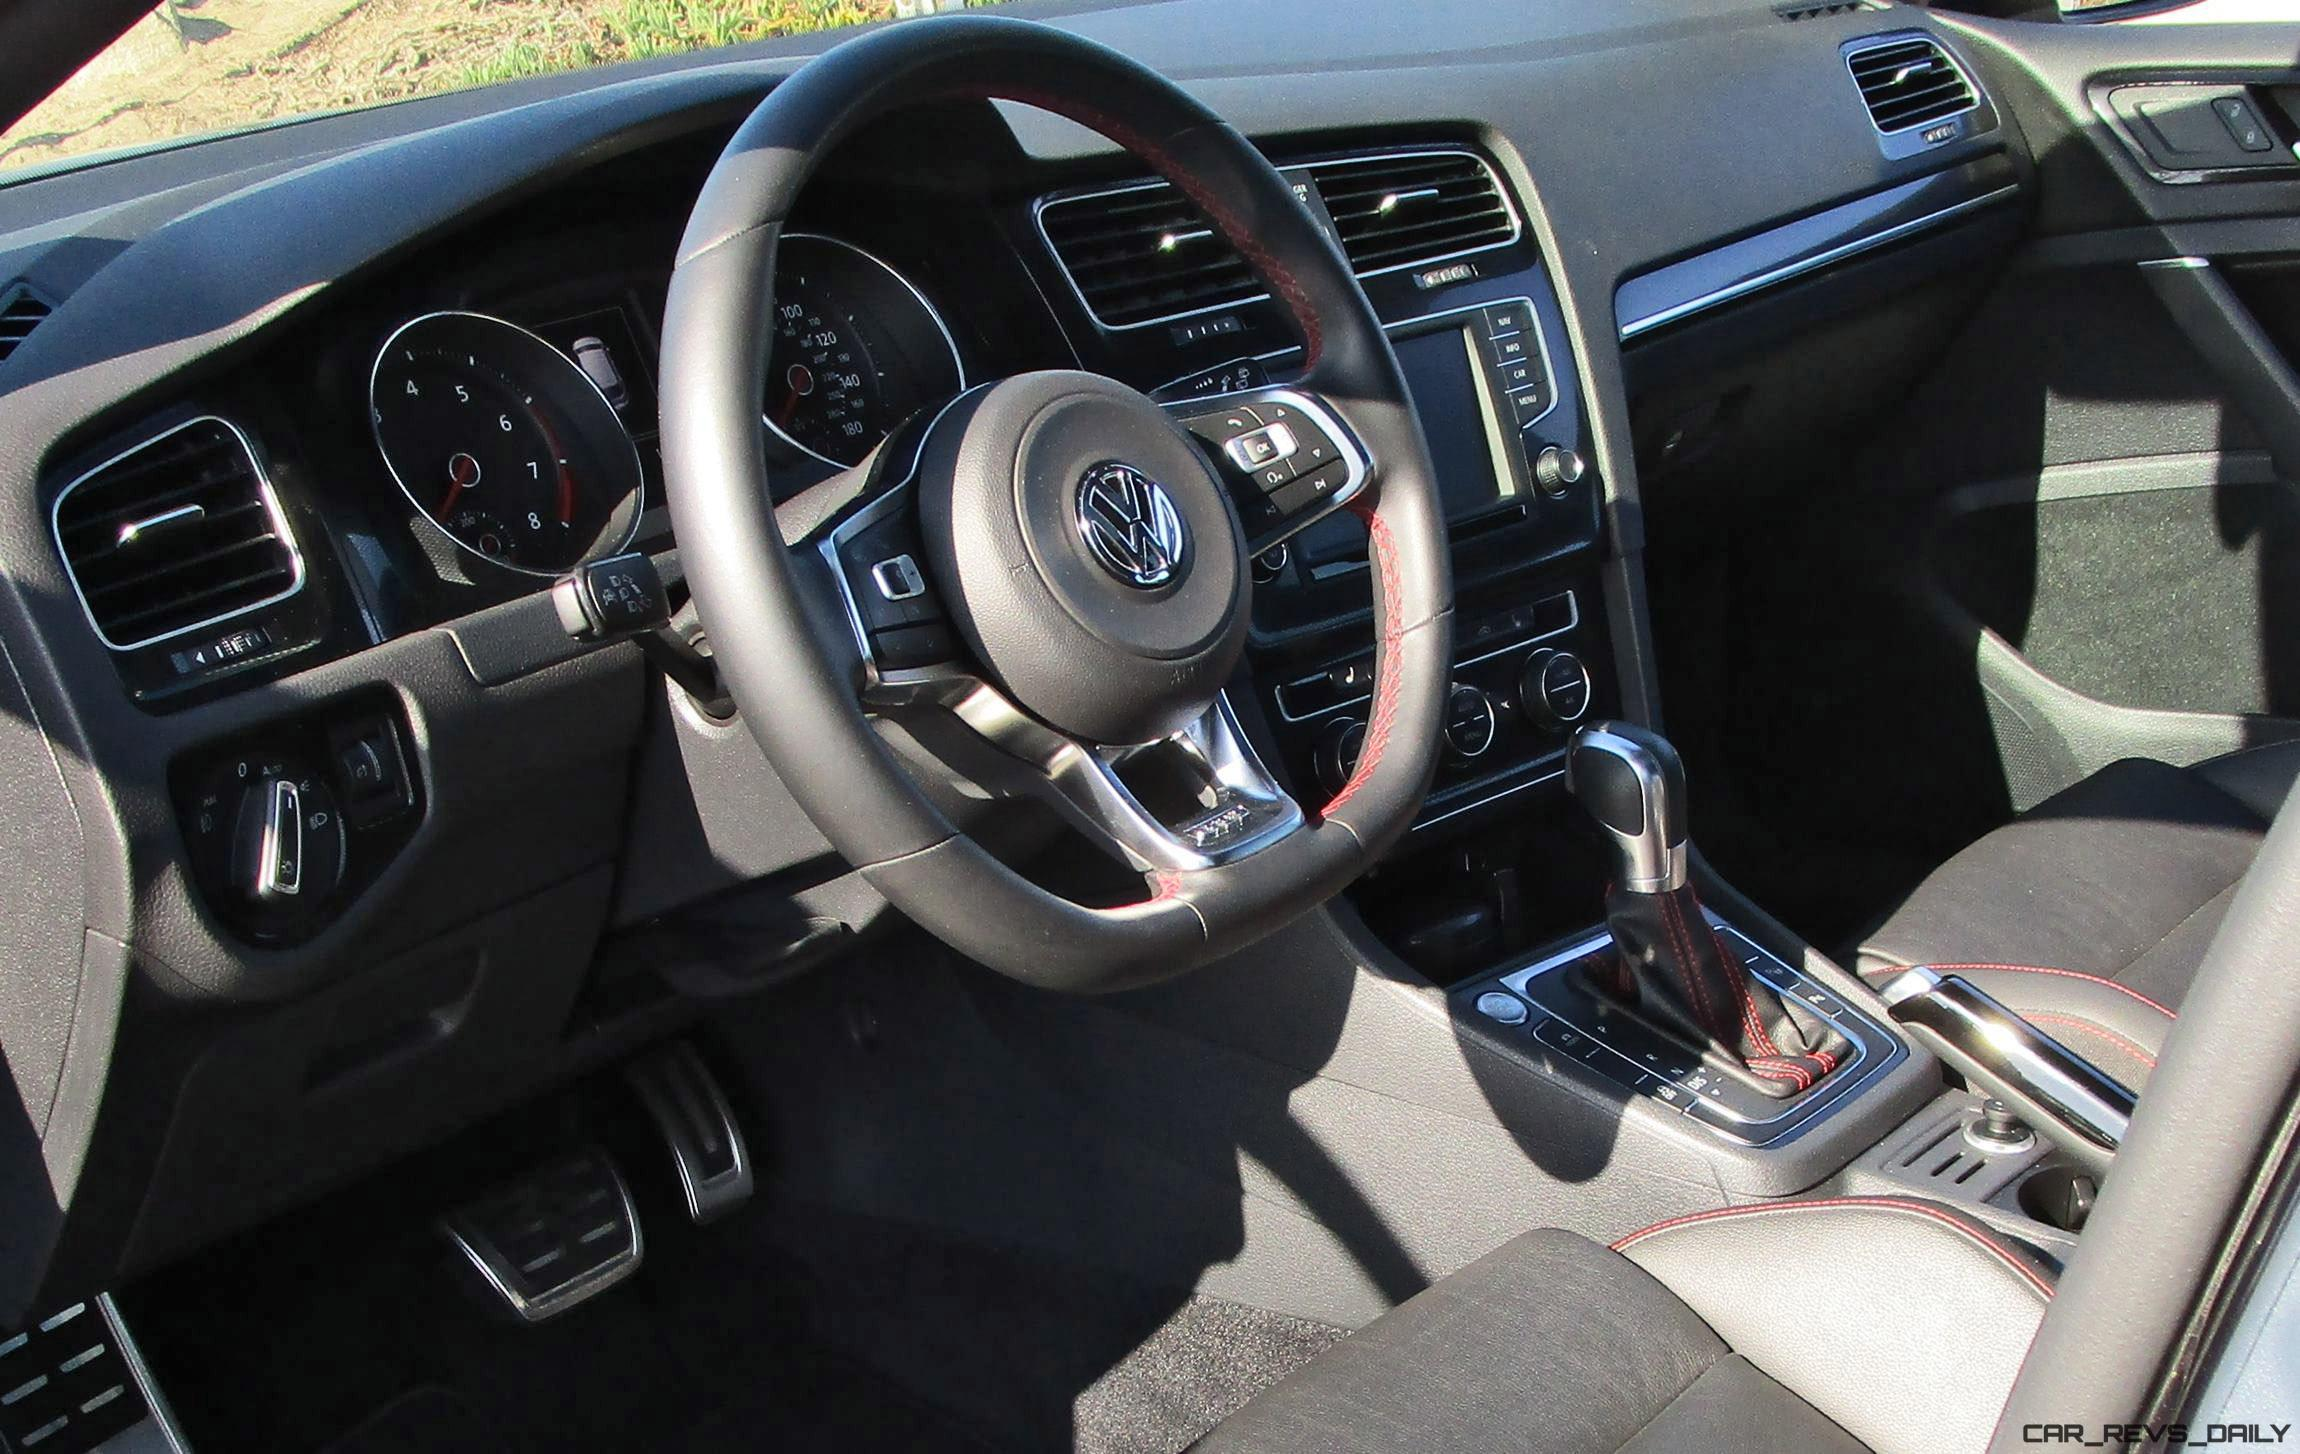 2016 Vw Golf Gti Autobahn Performance Pack Road Test Review By